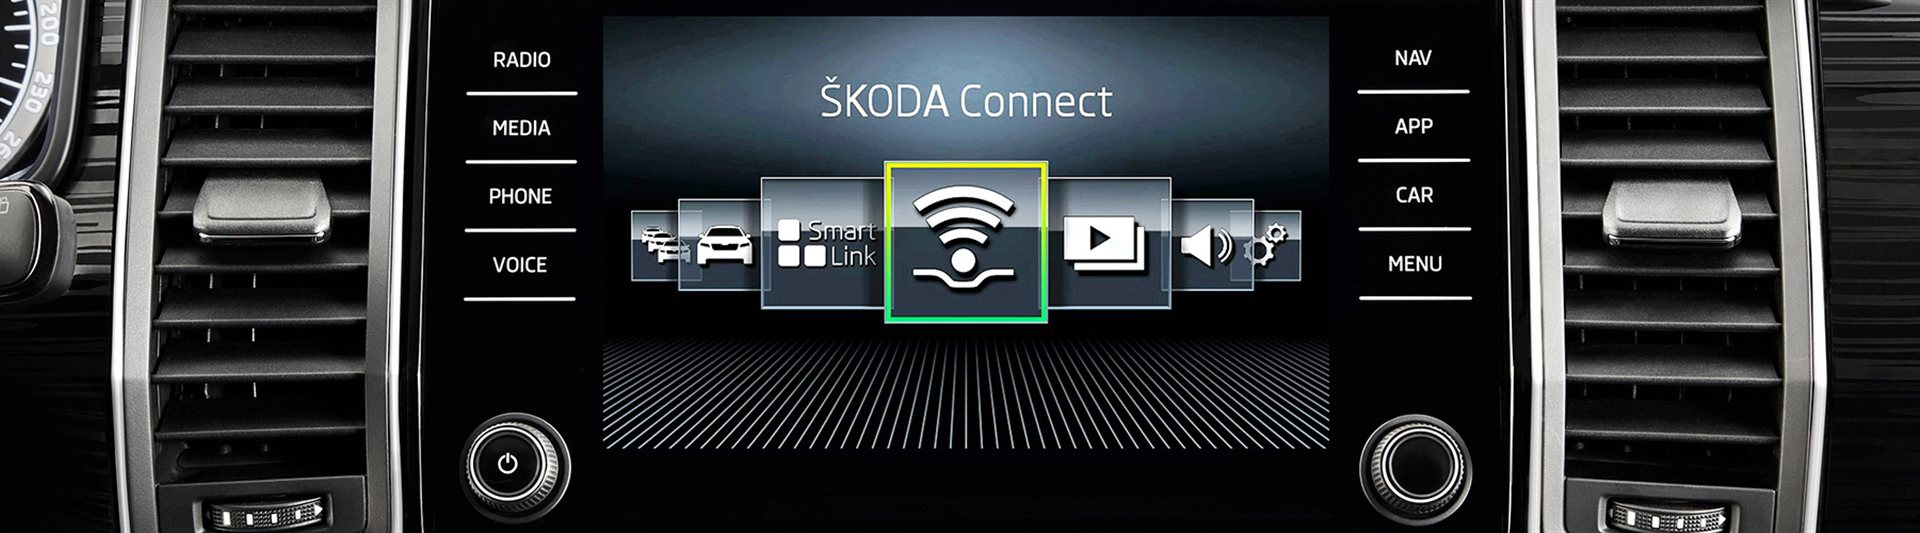 ŠKODA CONNECT